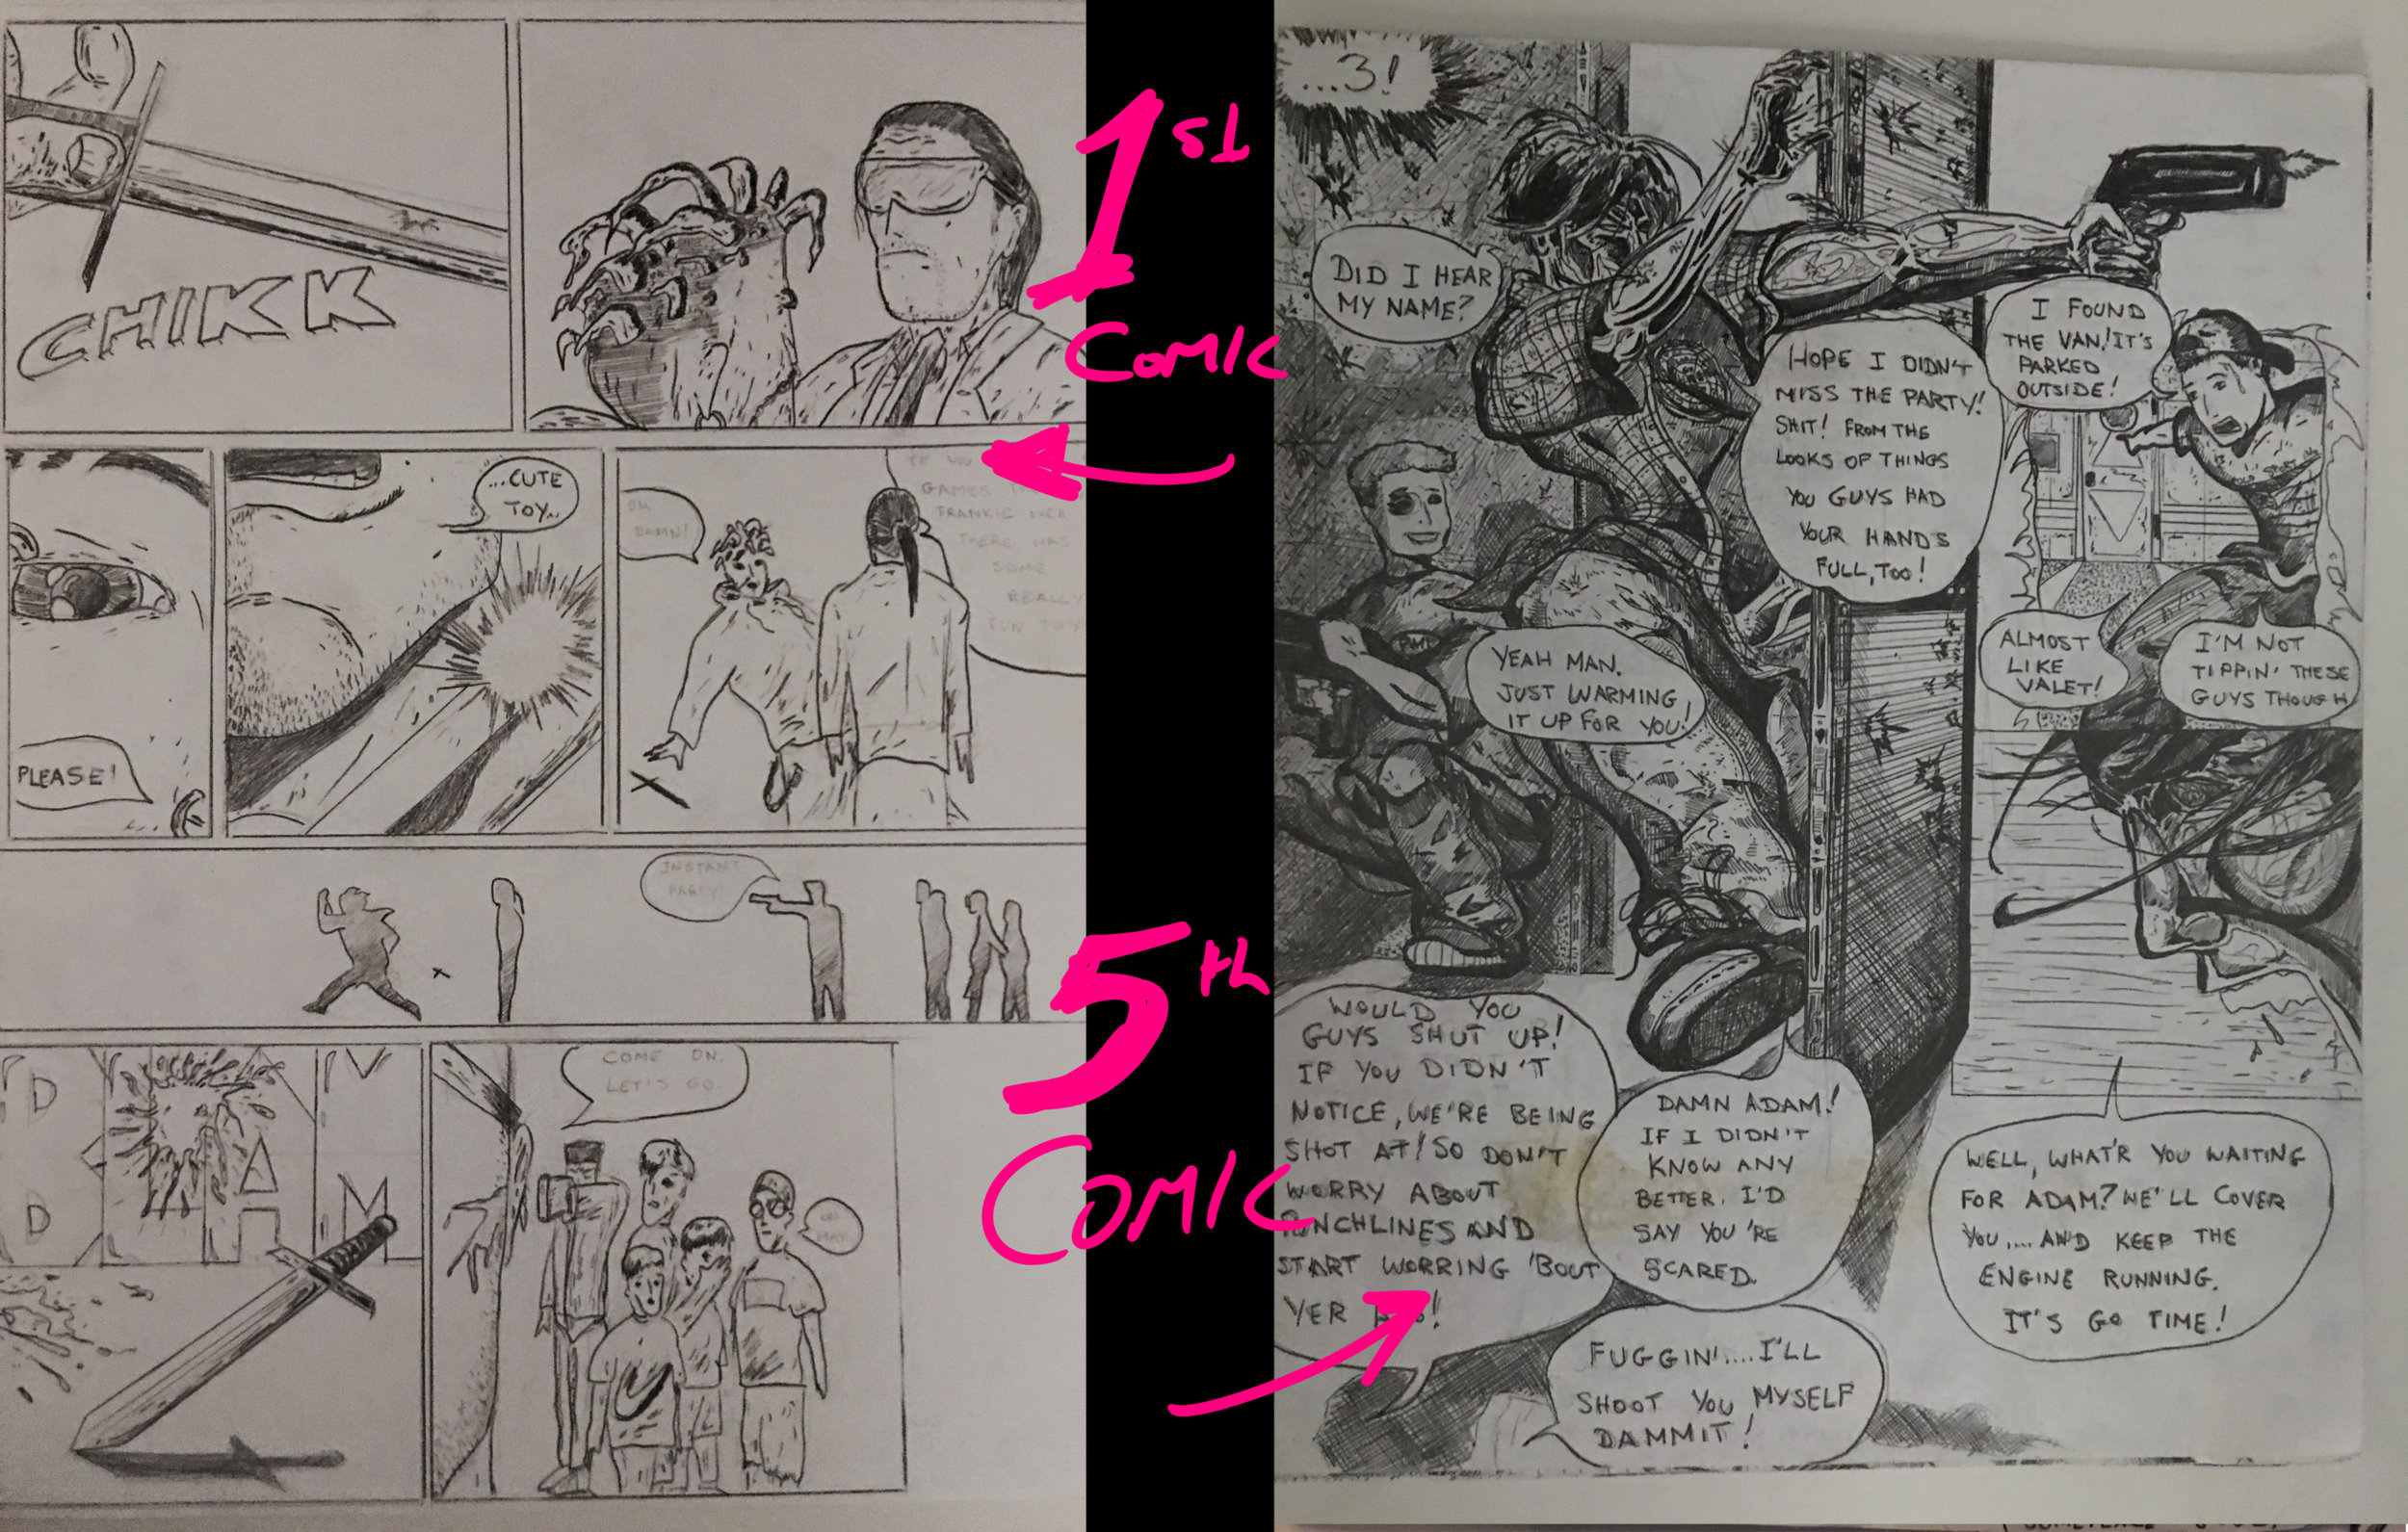 The PunX - the comic I made as a teenager. Comparing Issue #1 vs Issue #5